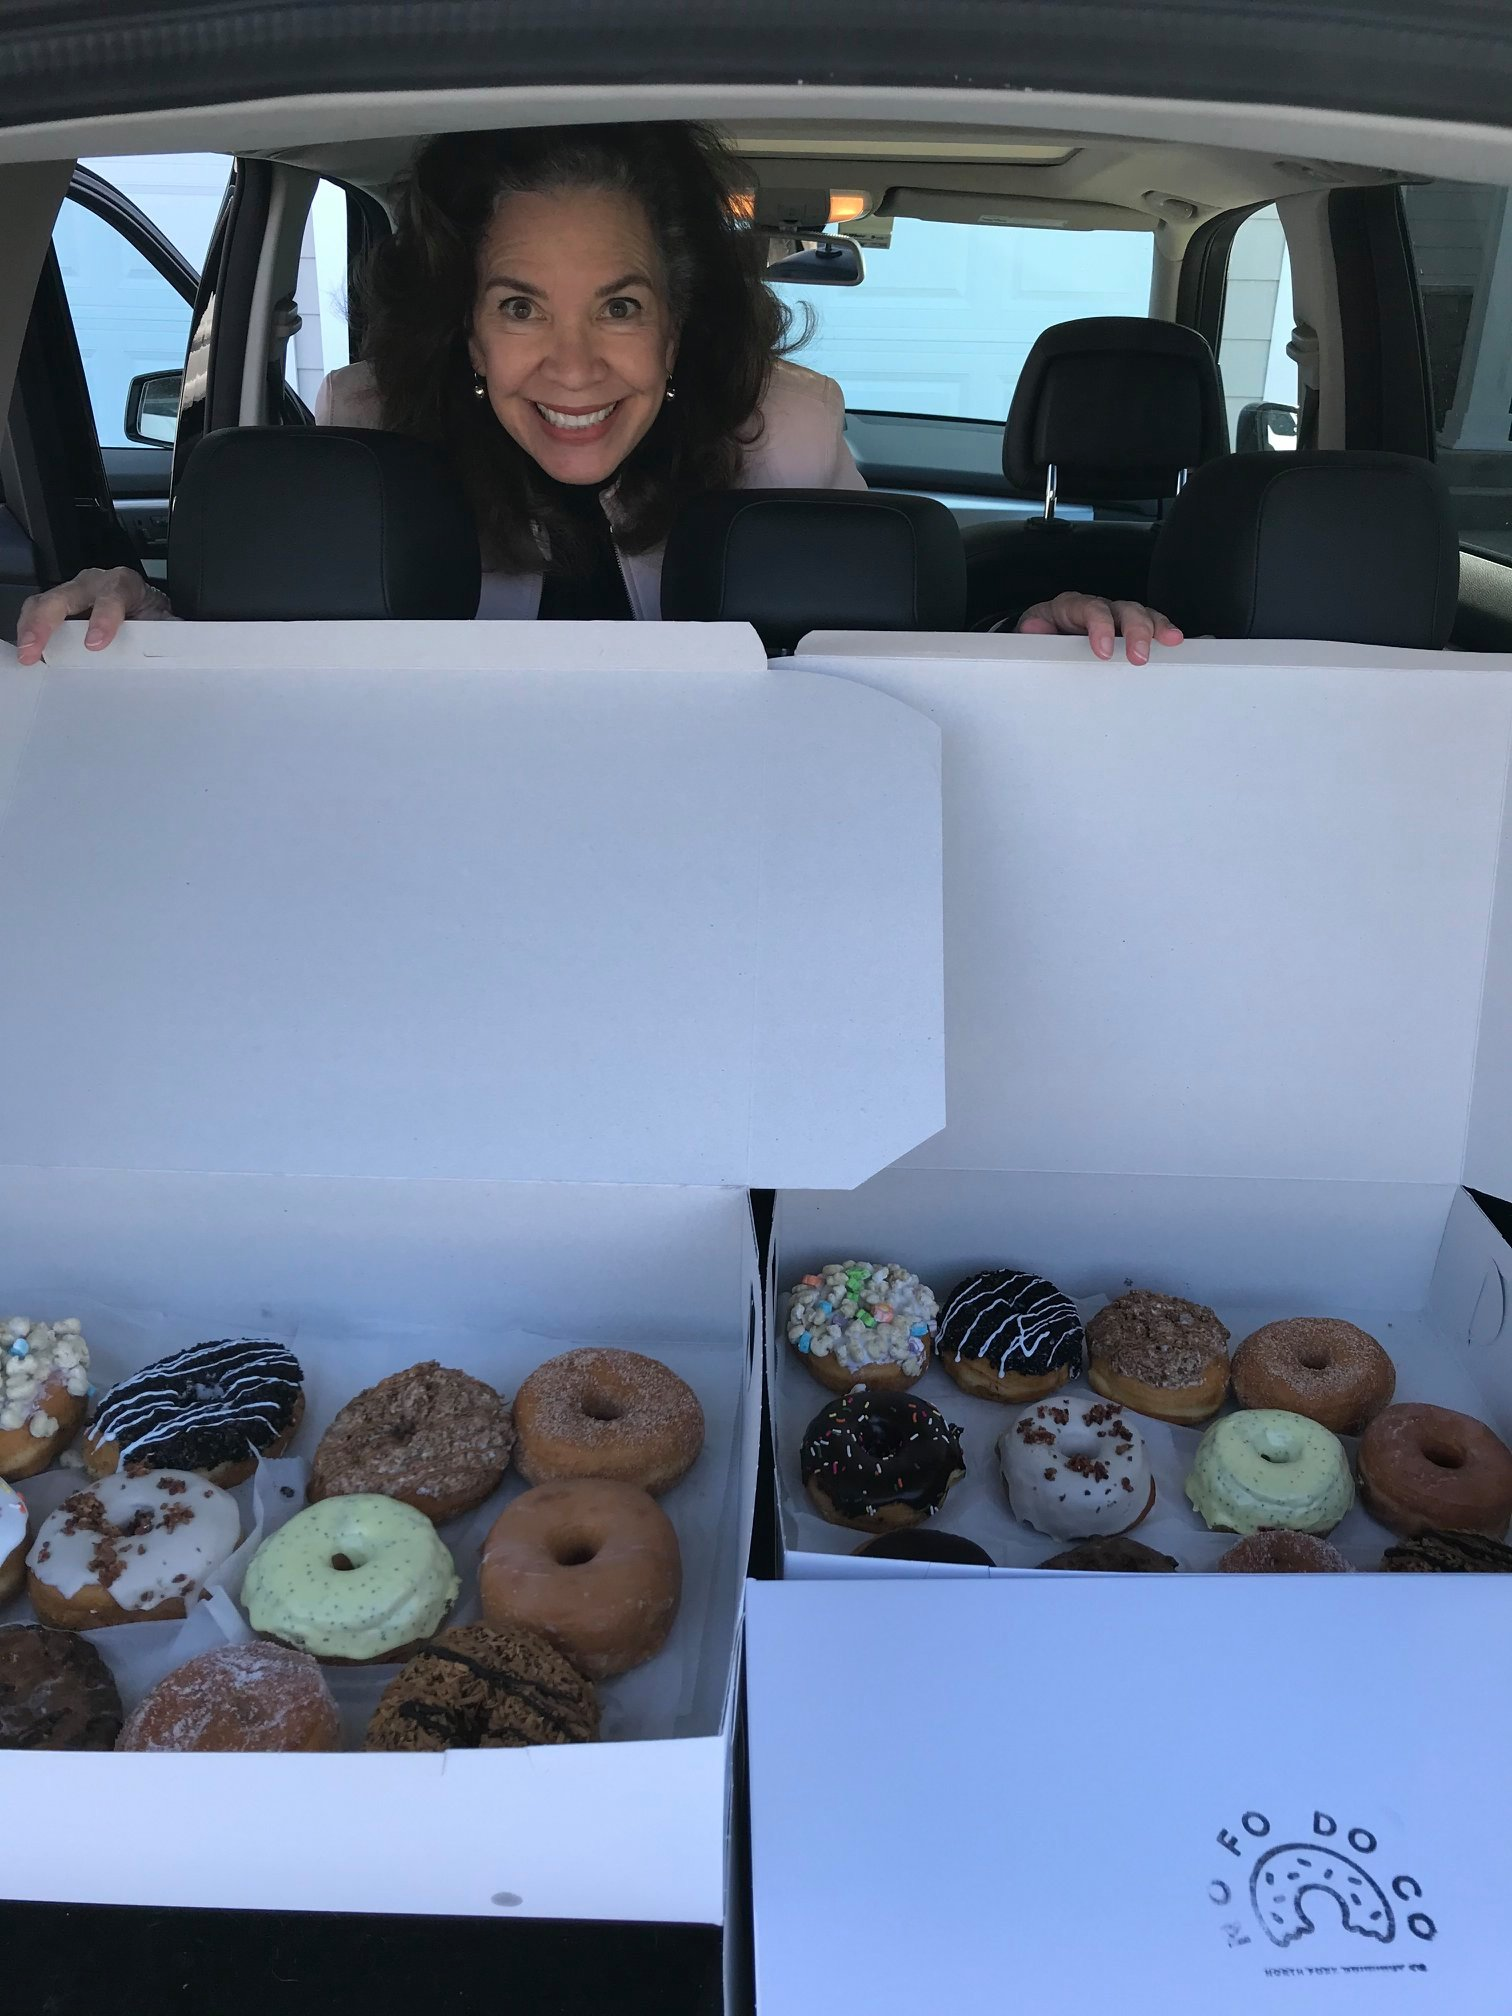 Donna with Donuts